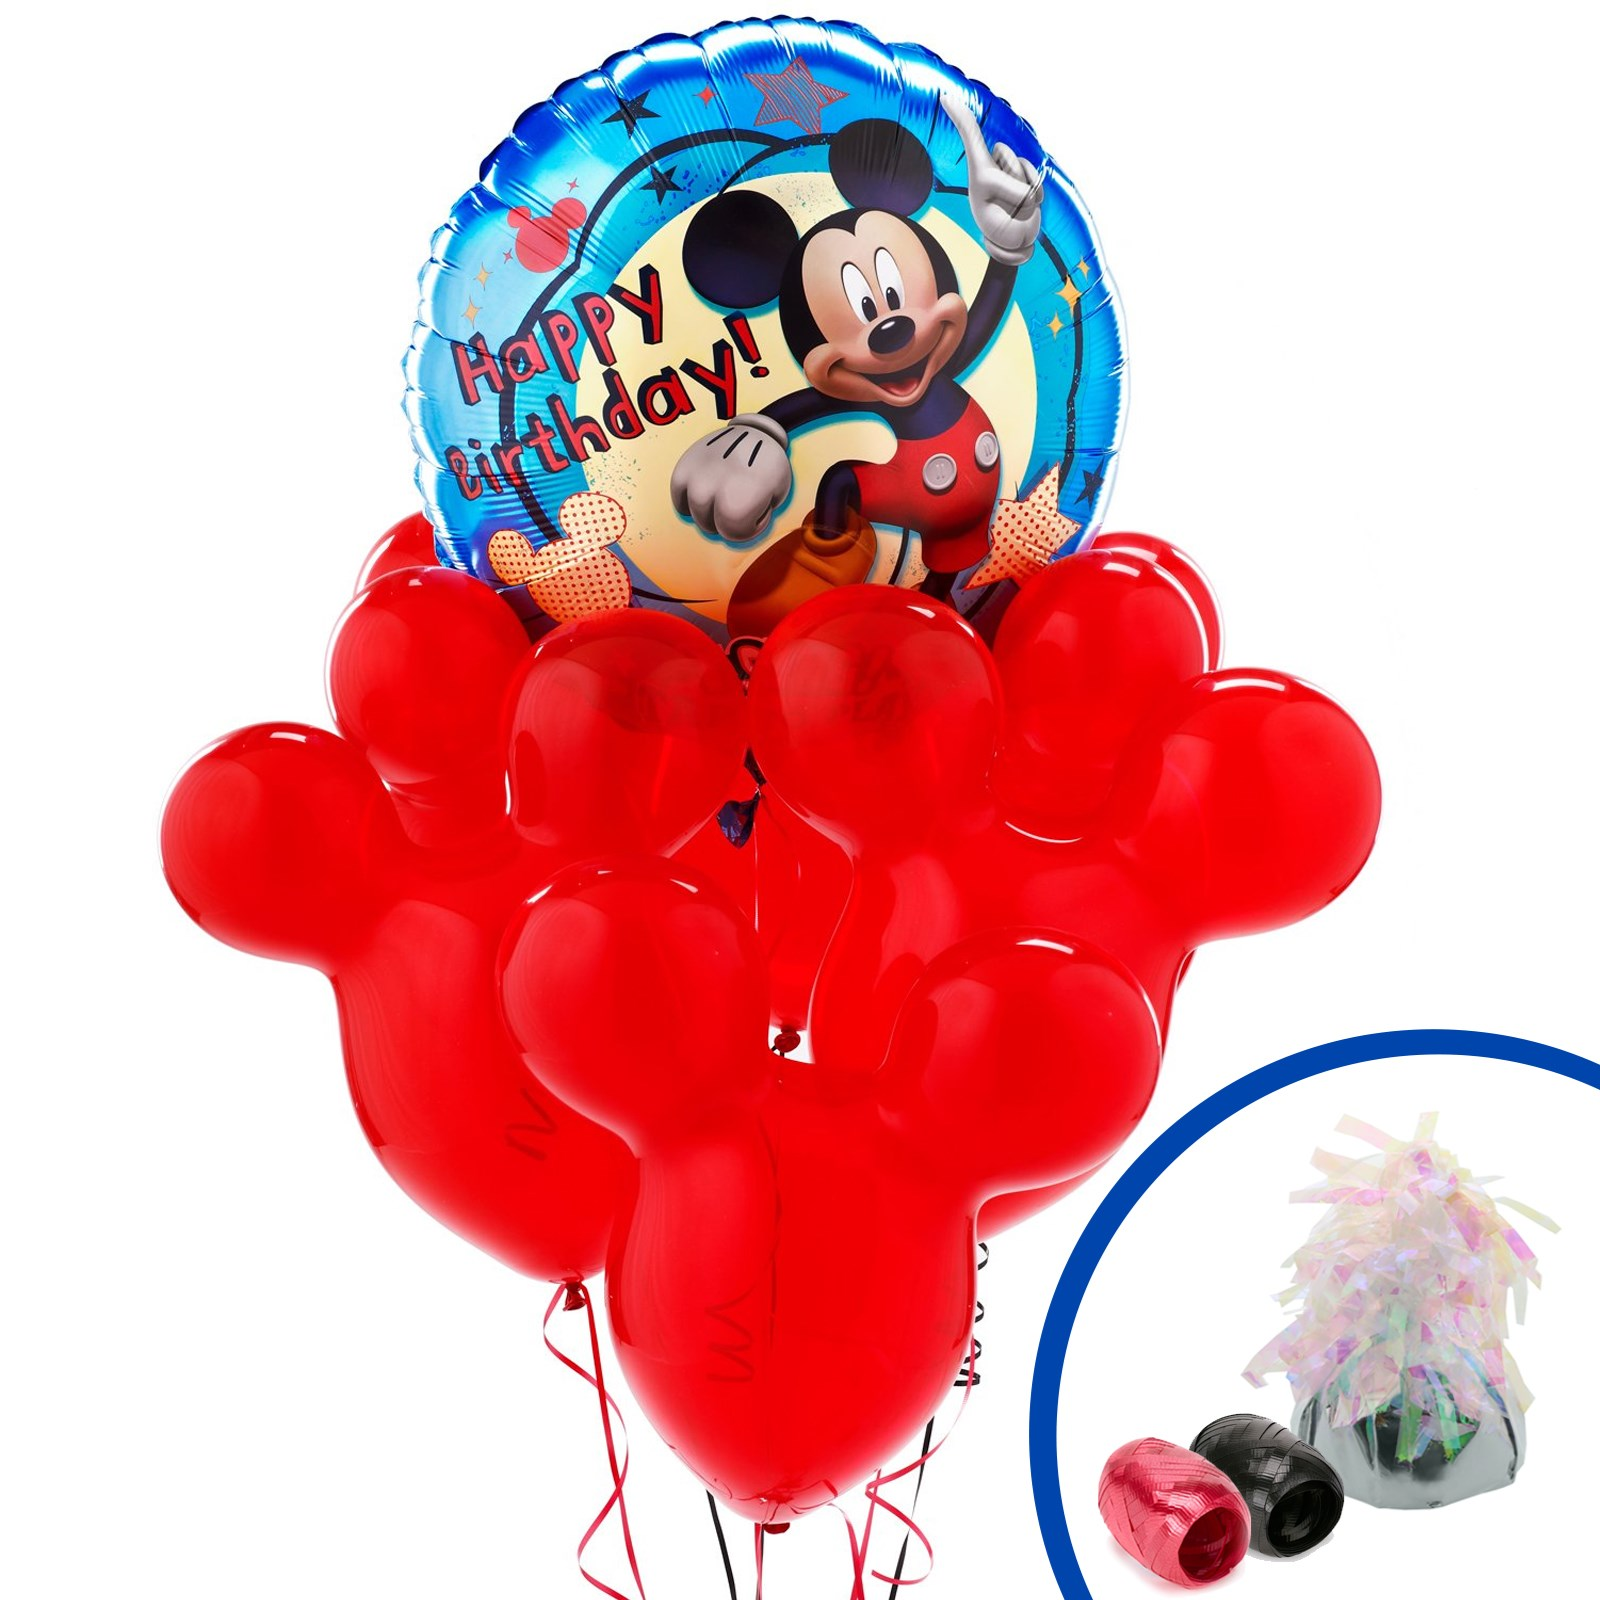 Disney Mickey Mouse Singing Balloon Bouquet